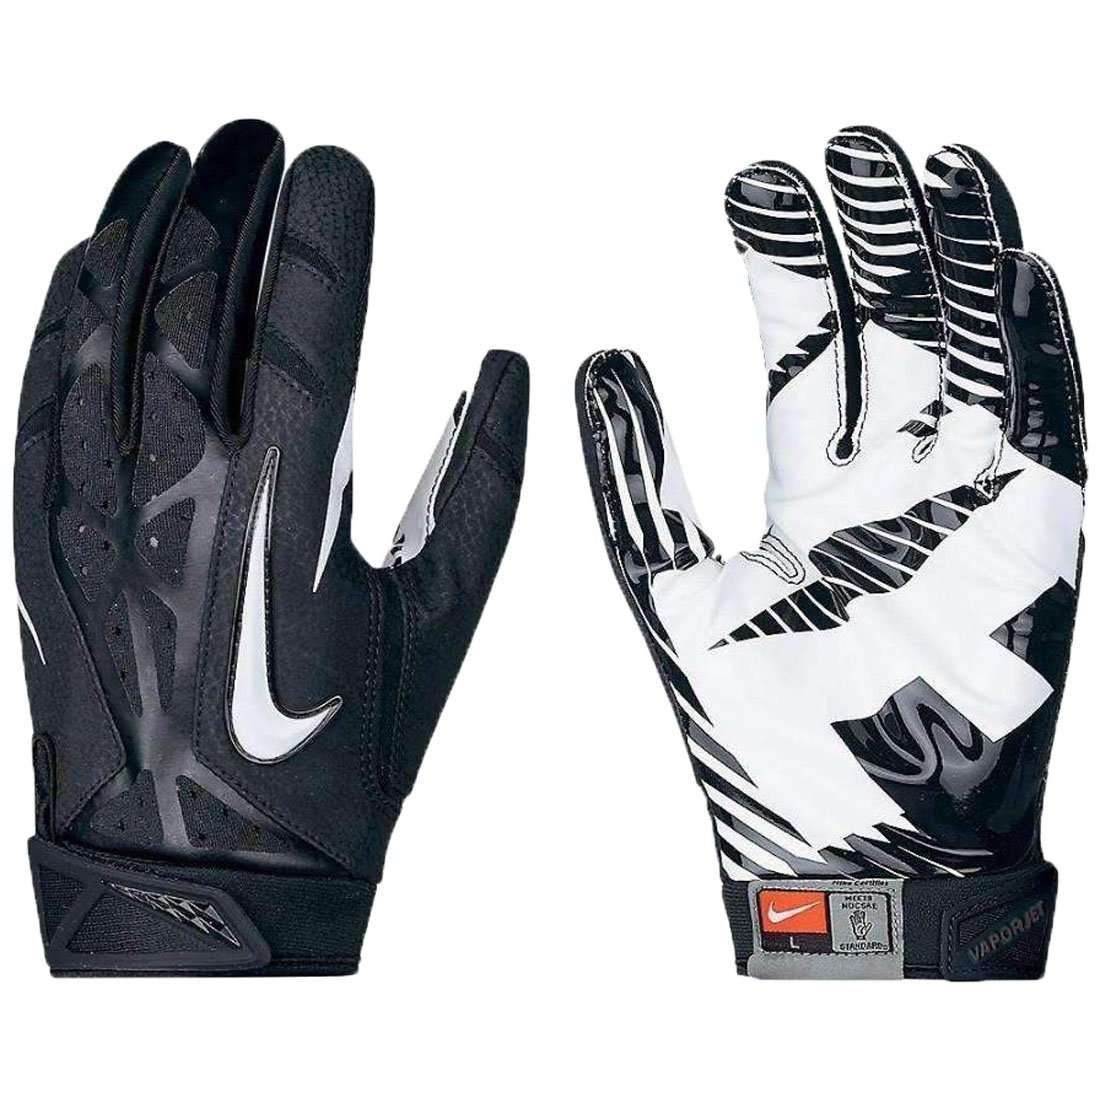 bb7f8b7b51b2 ... Nike Vapor Jet 2.0 Adult Football Receiver Gloves - League Outfitters